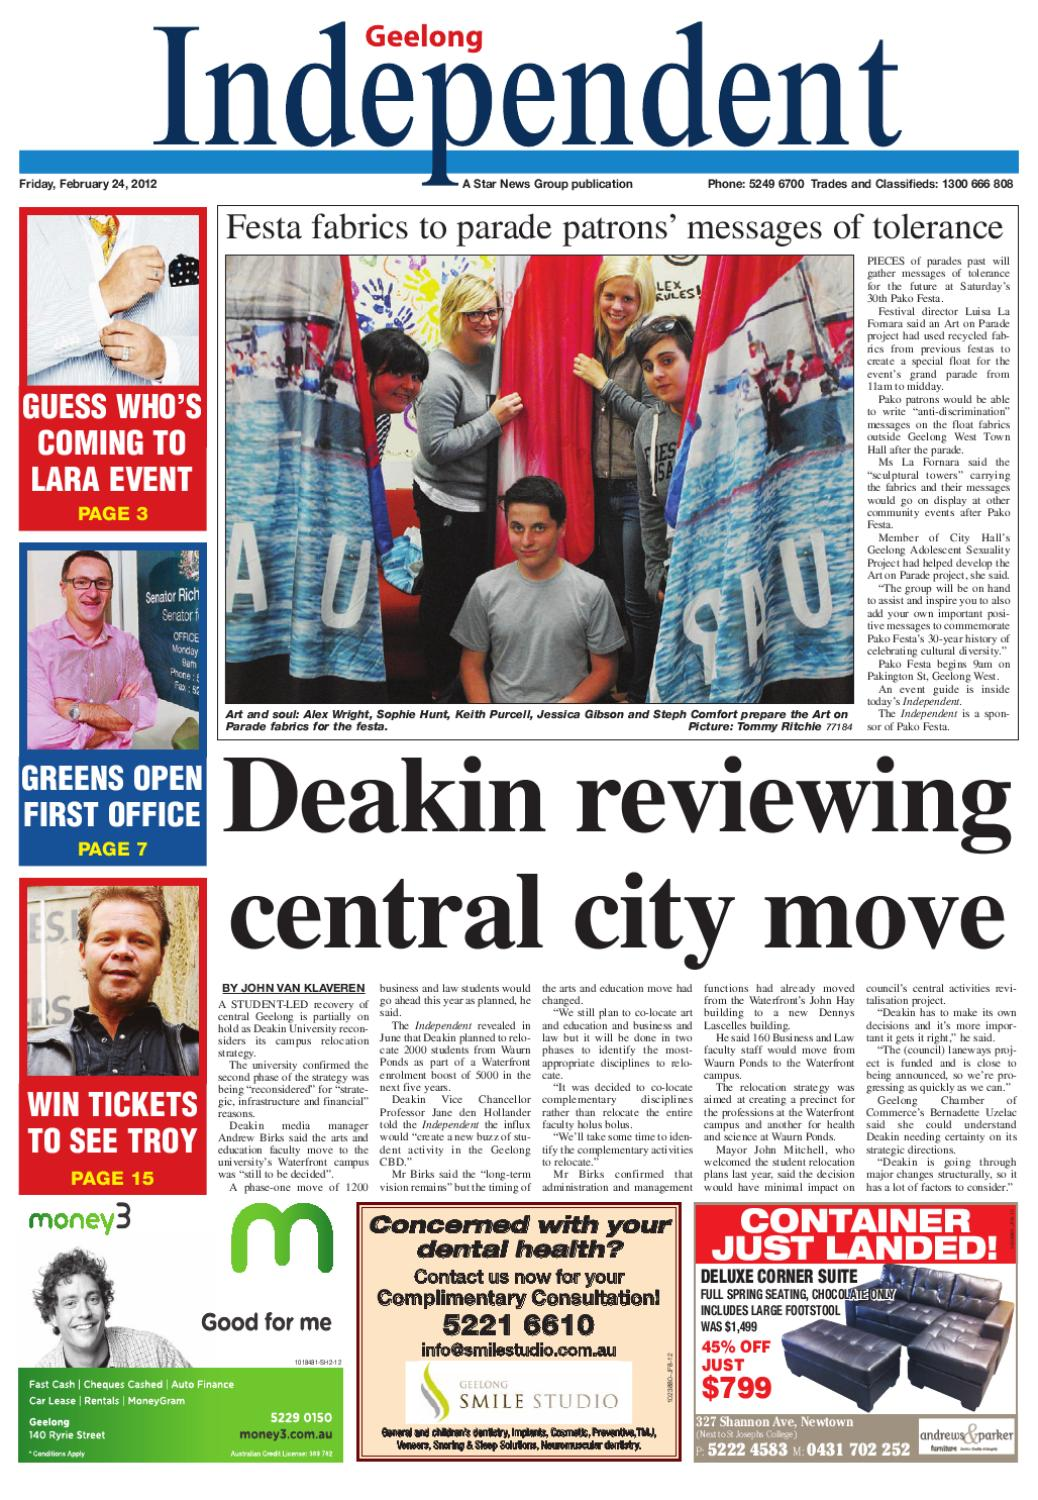 5249d2026391 Geelong Indy 24-02-2012pdf by Star News Group - issuu